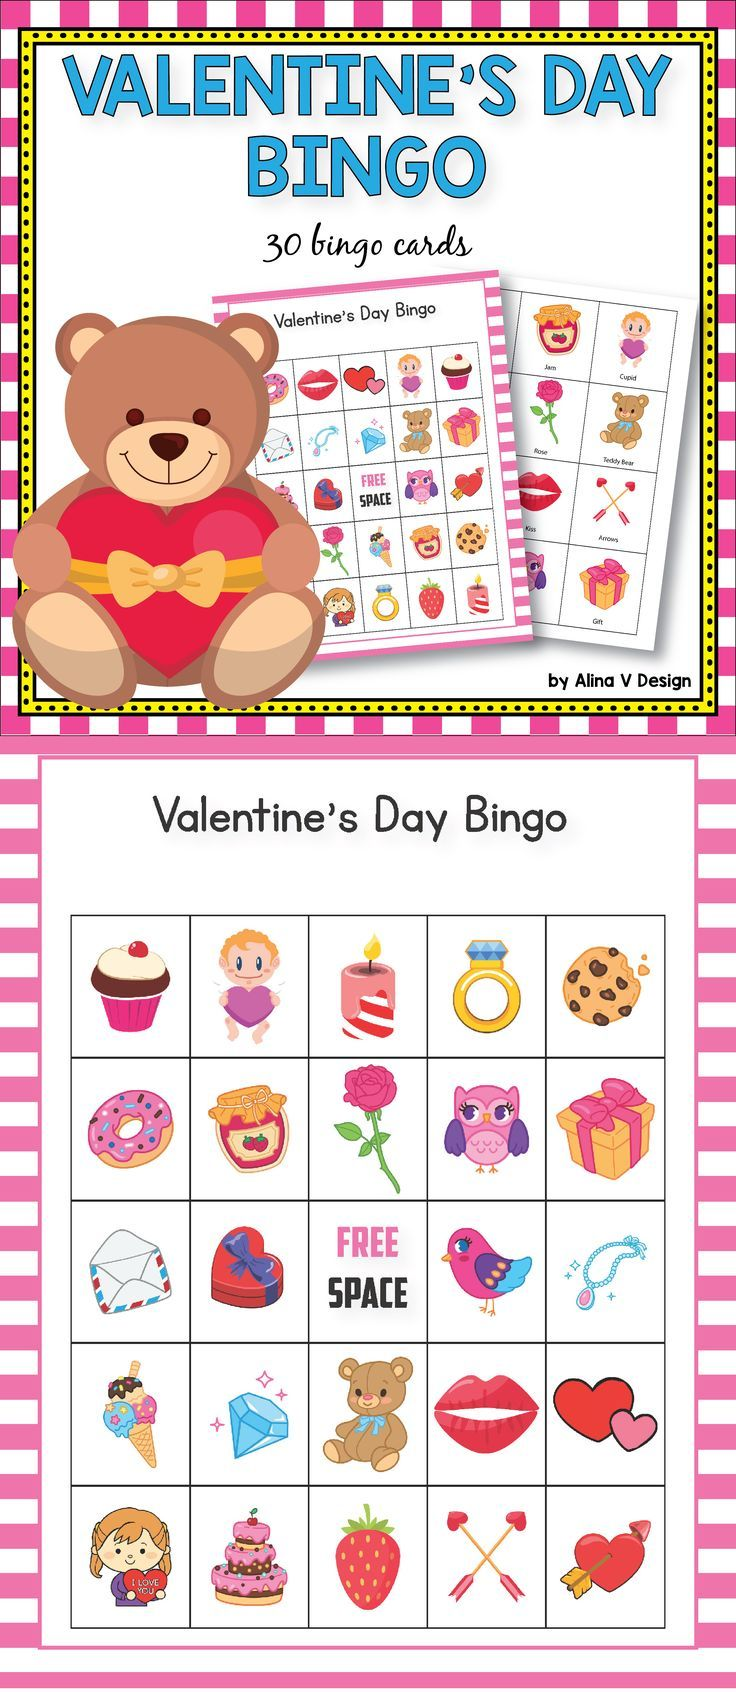 Valentine's Day Bingo Game - Valentine's Day activity for preschool,  kindergarten and  first grade kids. Teach your students more about  Valentine's using these fun printable games suited for large groups of students.   #valentinesday #bingo #activities #kindergarten #fun #cards #classroom #ideas